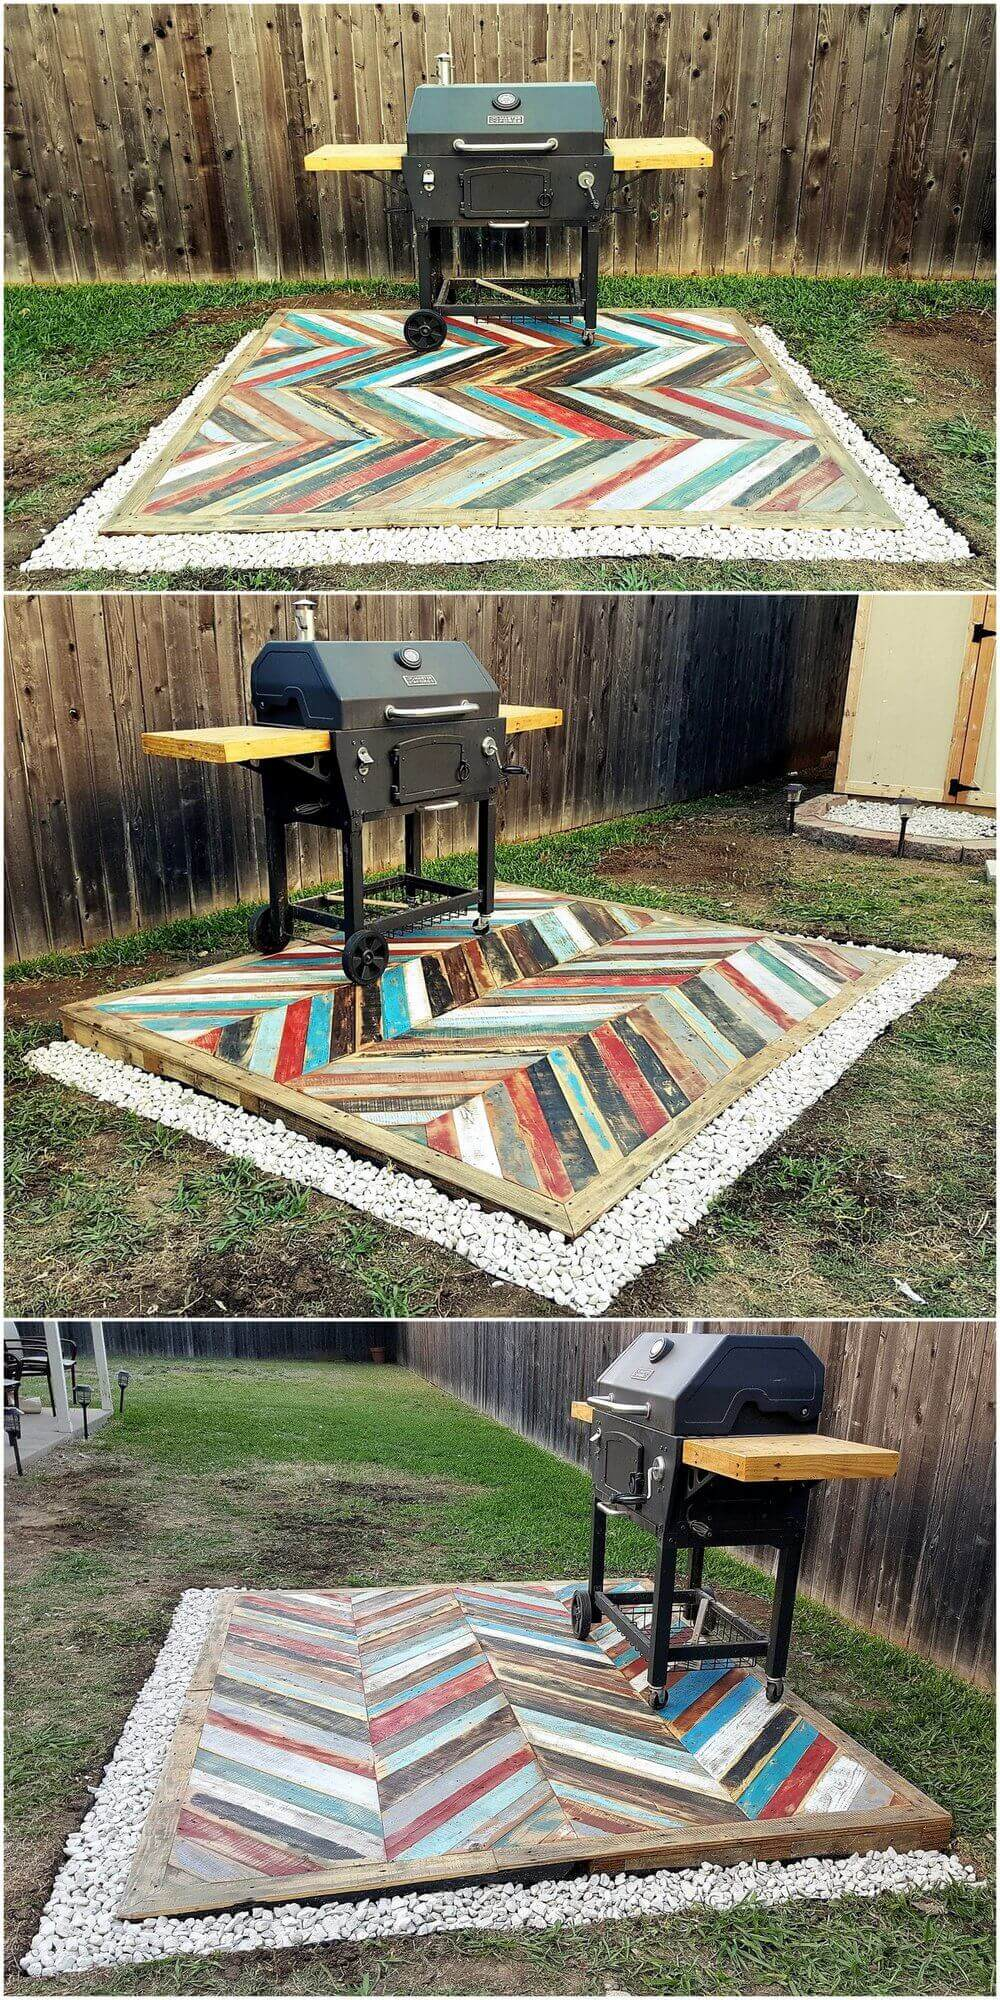 Recycled Pallets Wooden Garden Deck | DIY Backyard Projects For Summer | FarmFoodFamily